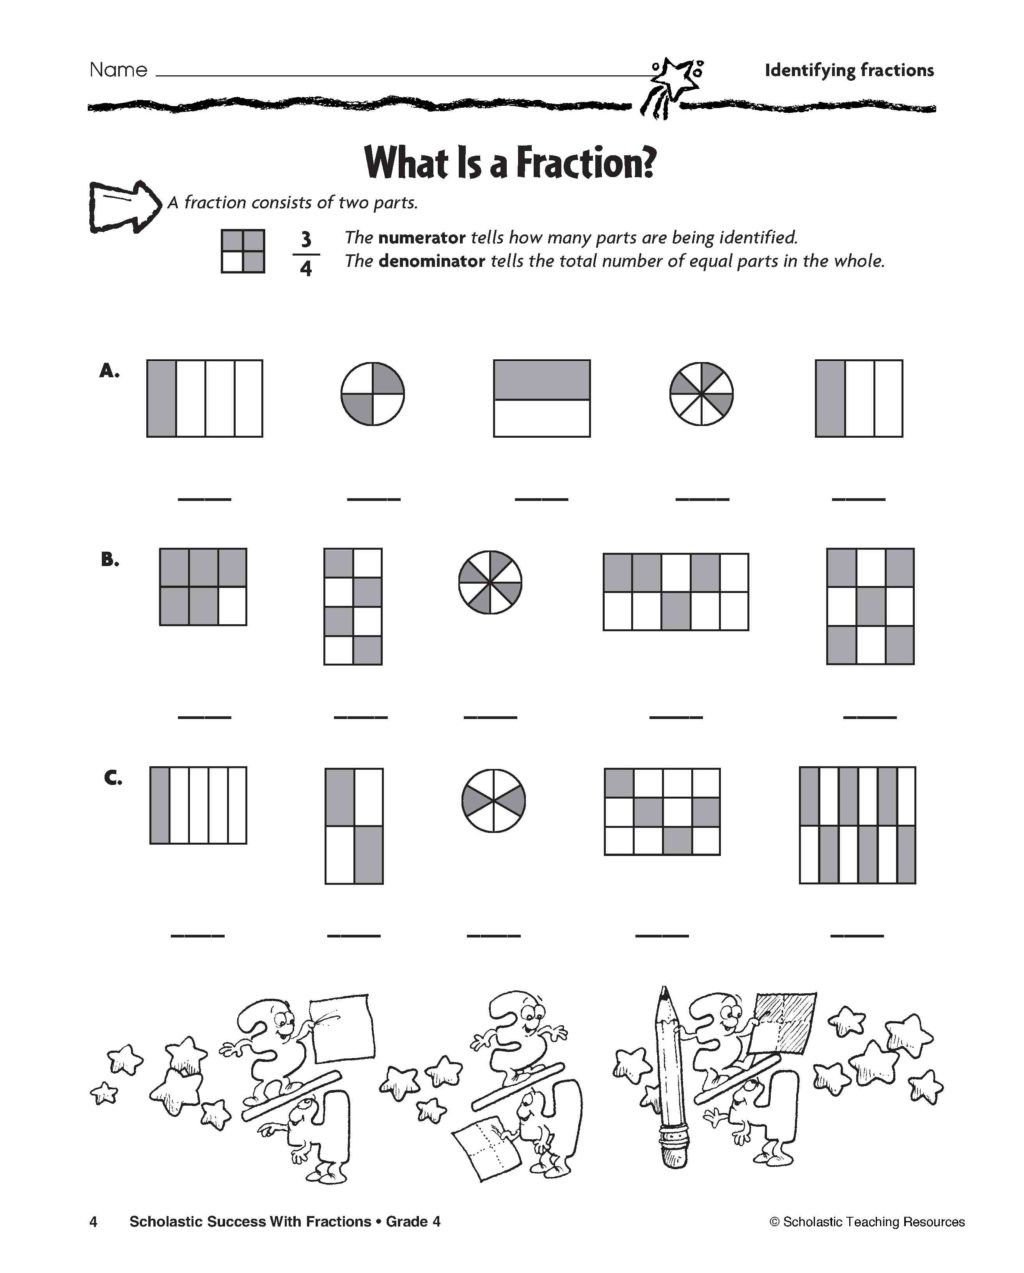 7th Grade Math Enrichment Worksheets Worksheet Fractions1 3rd Grade Math Enrichment Worksheets